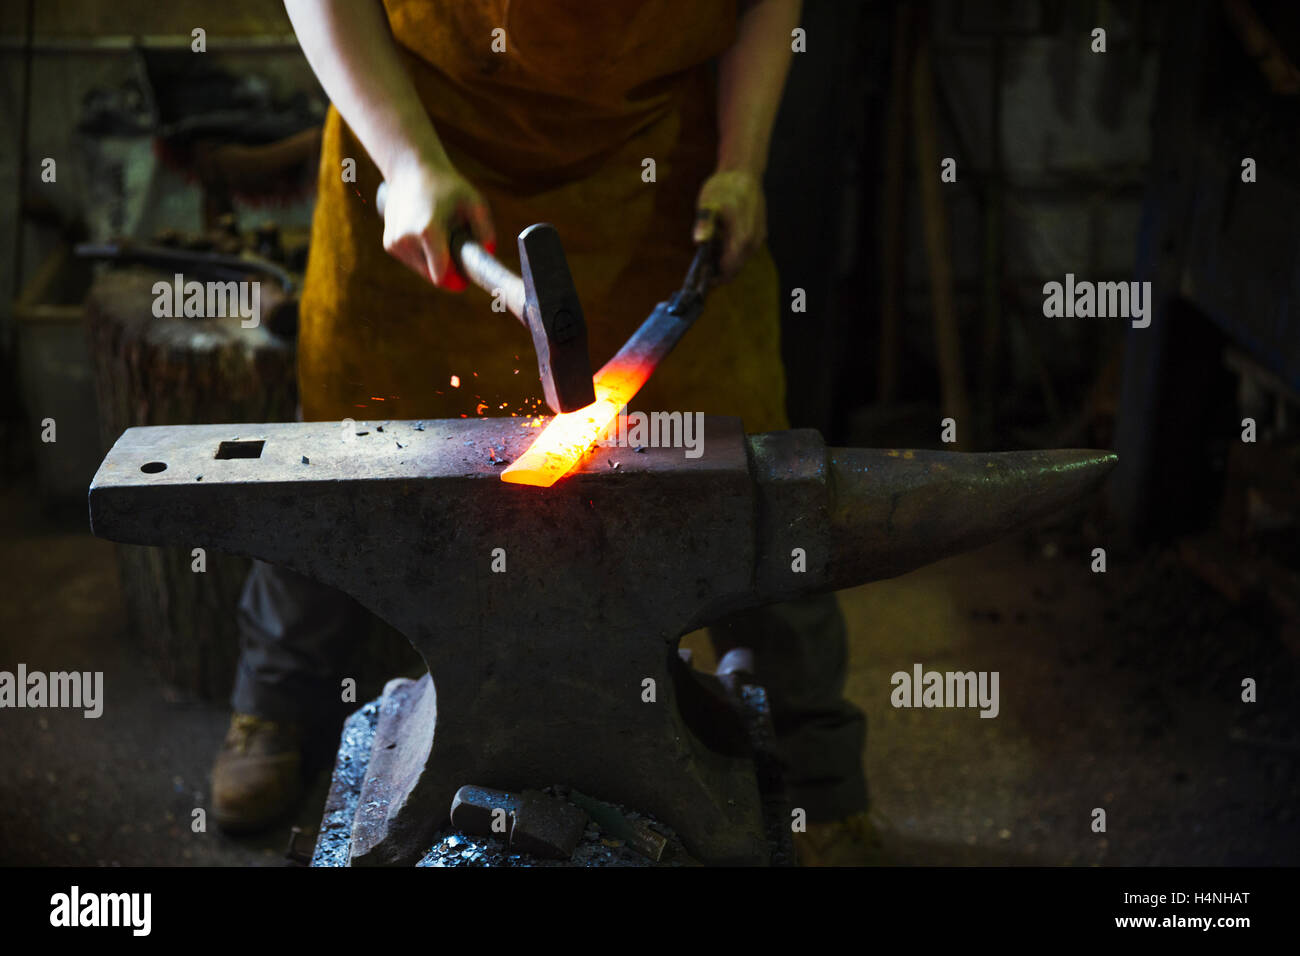 A blacksmith strikes a length of red hot metal on anvil with a hammer in a workshop. Stock Photo